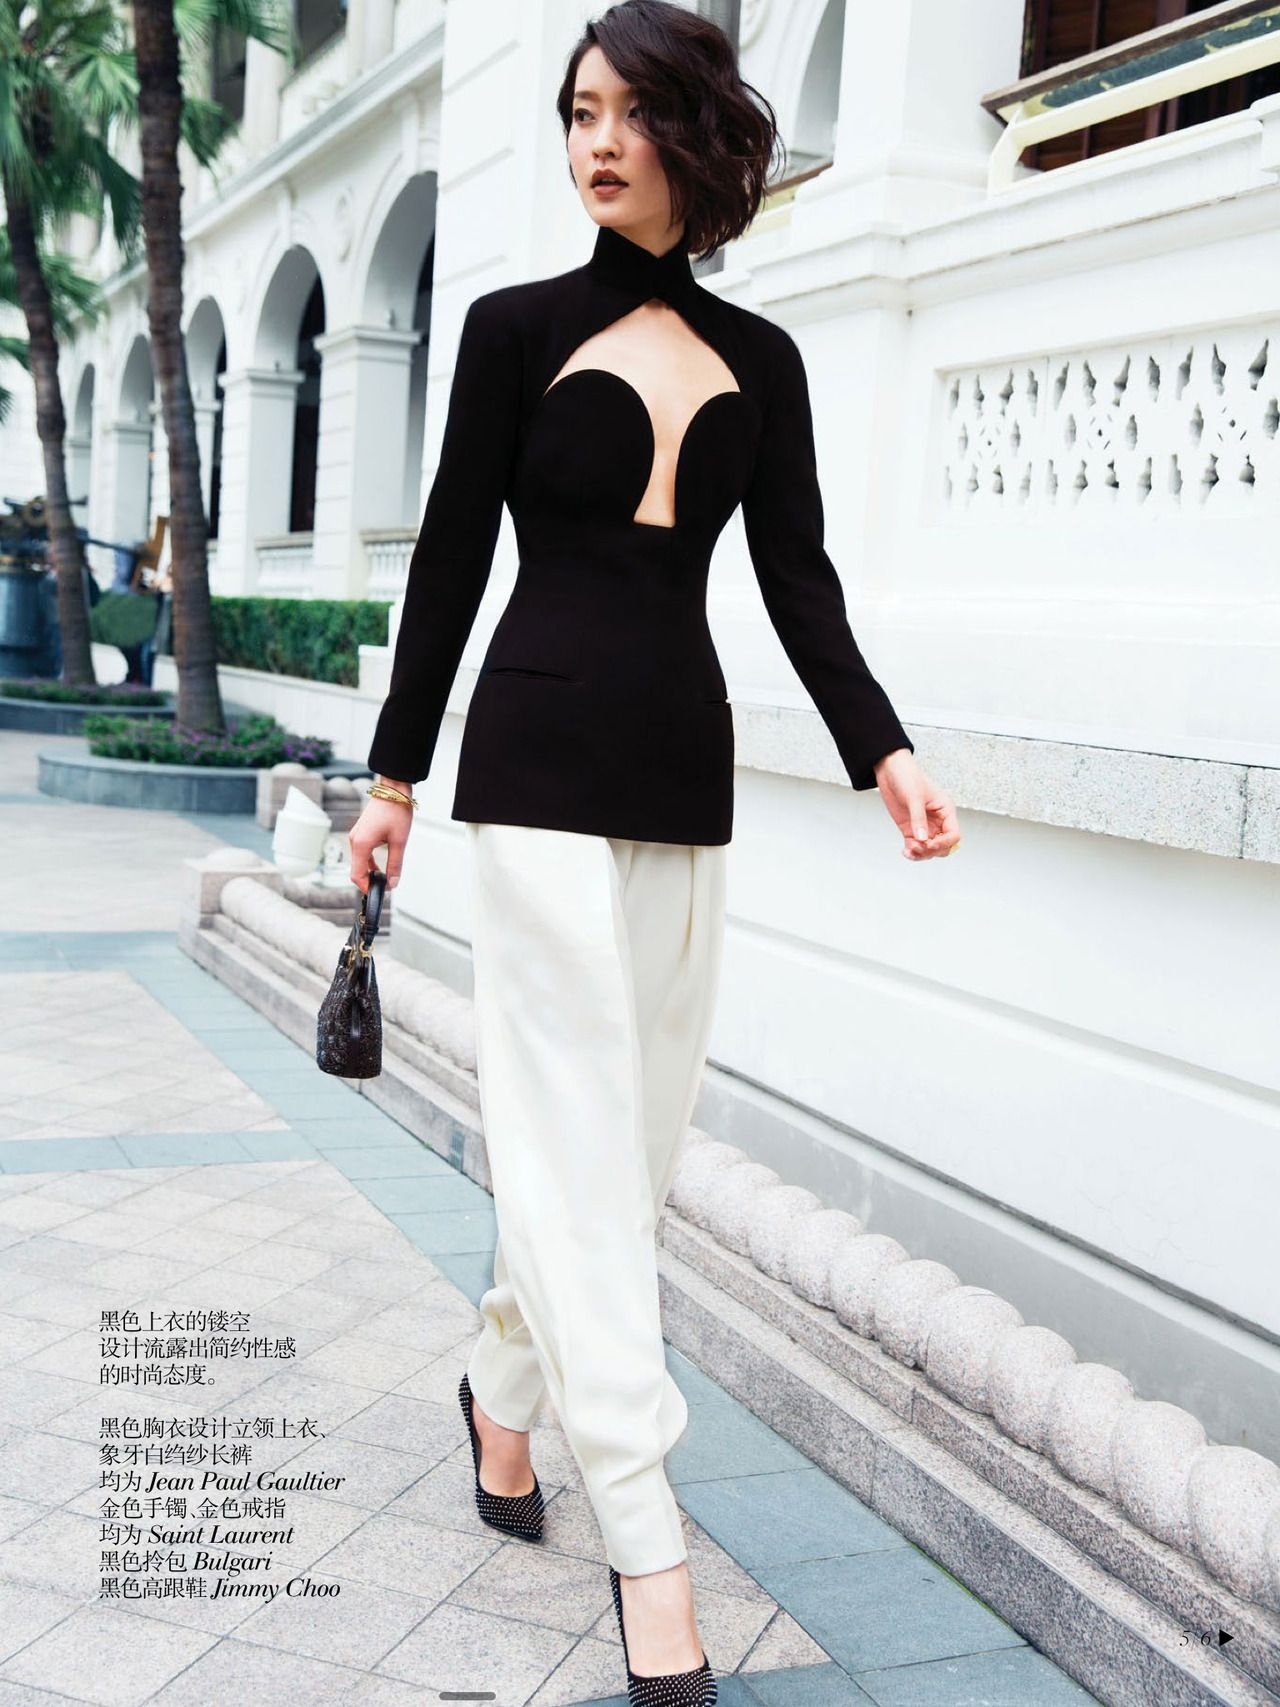 Du Juan in Jean Paul Gaultier by Jimmy Ming Shum for Vogue China Red Carpet Collection